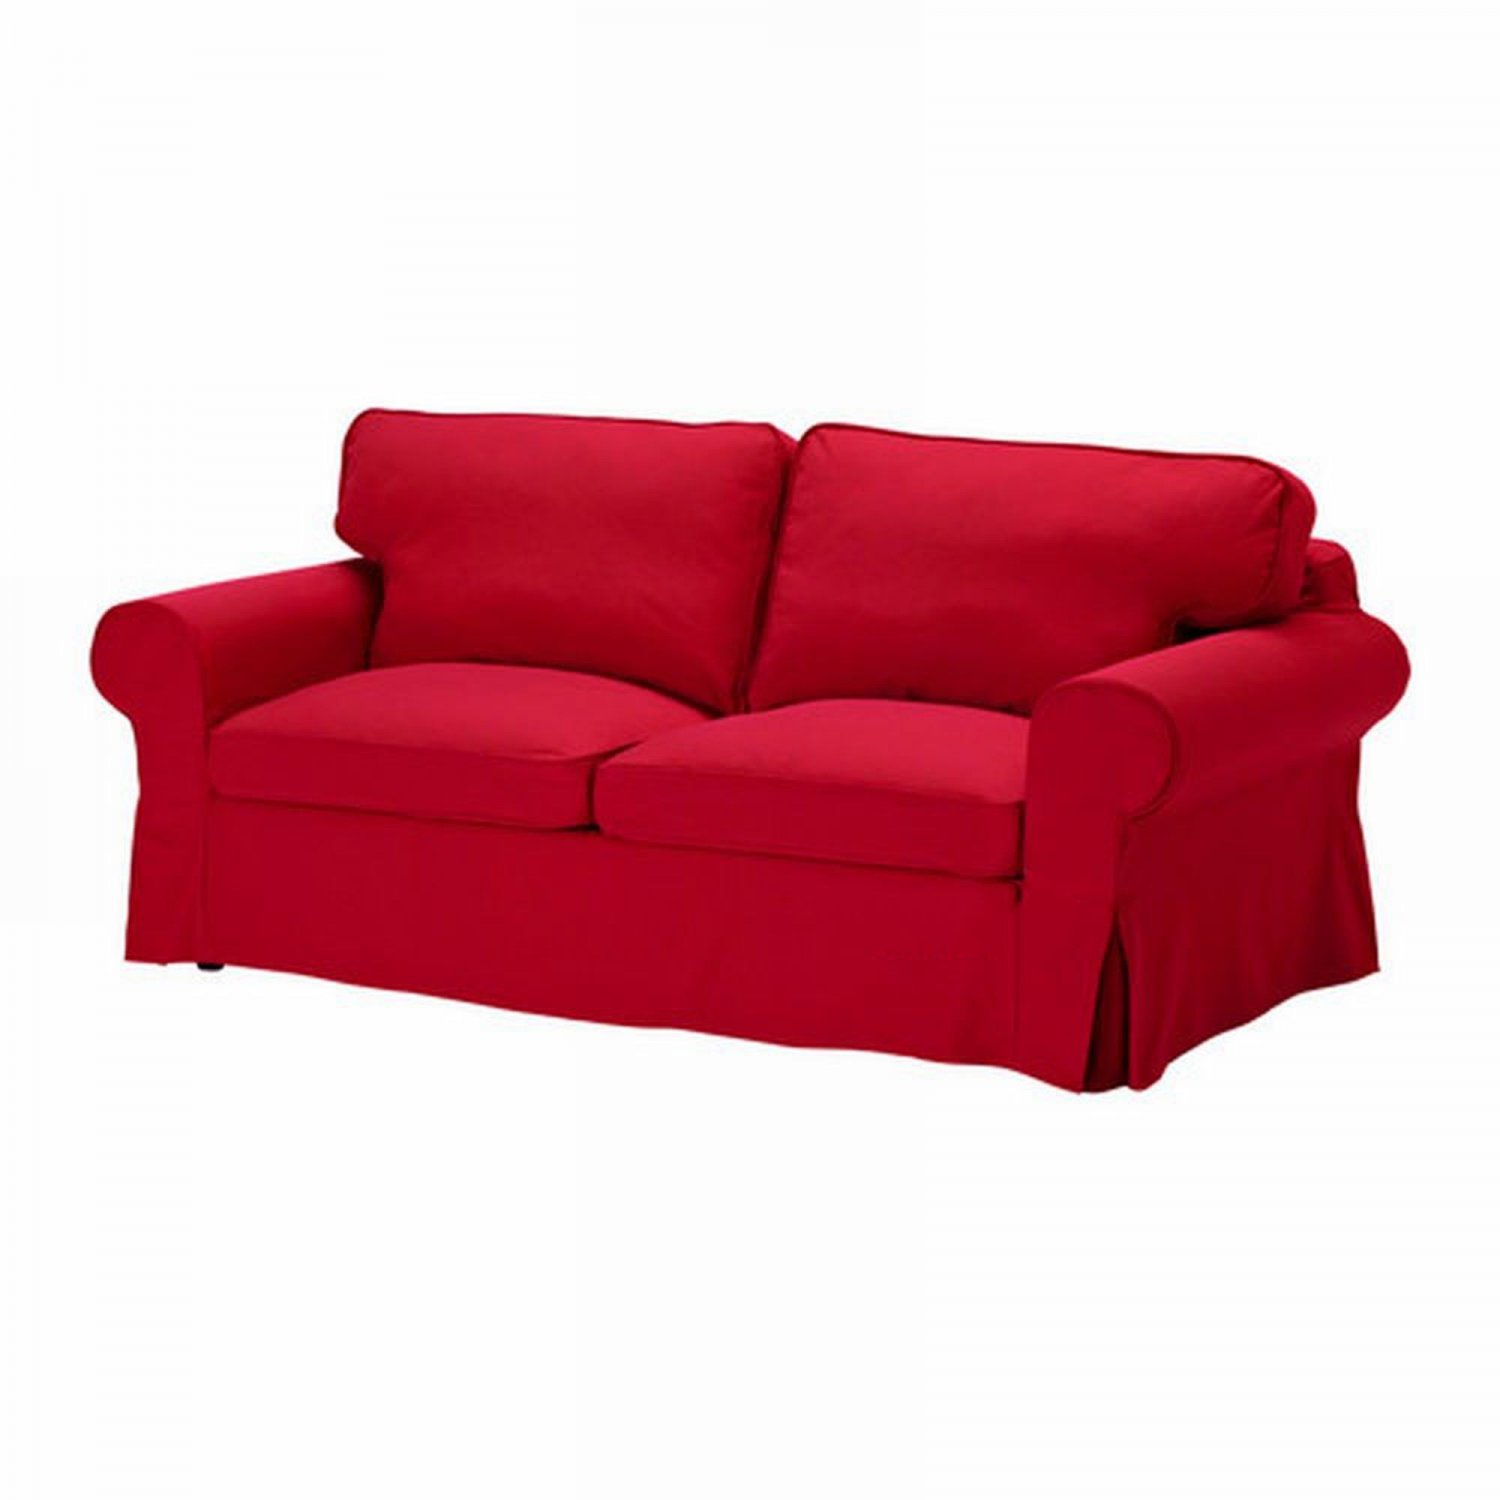 Ikea ektorp sofa bed slipcover cover idemo red sofabed cvr for Sofa bed cover